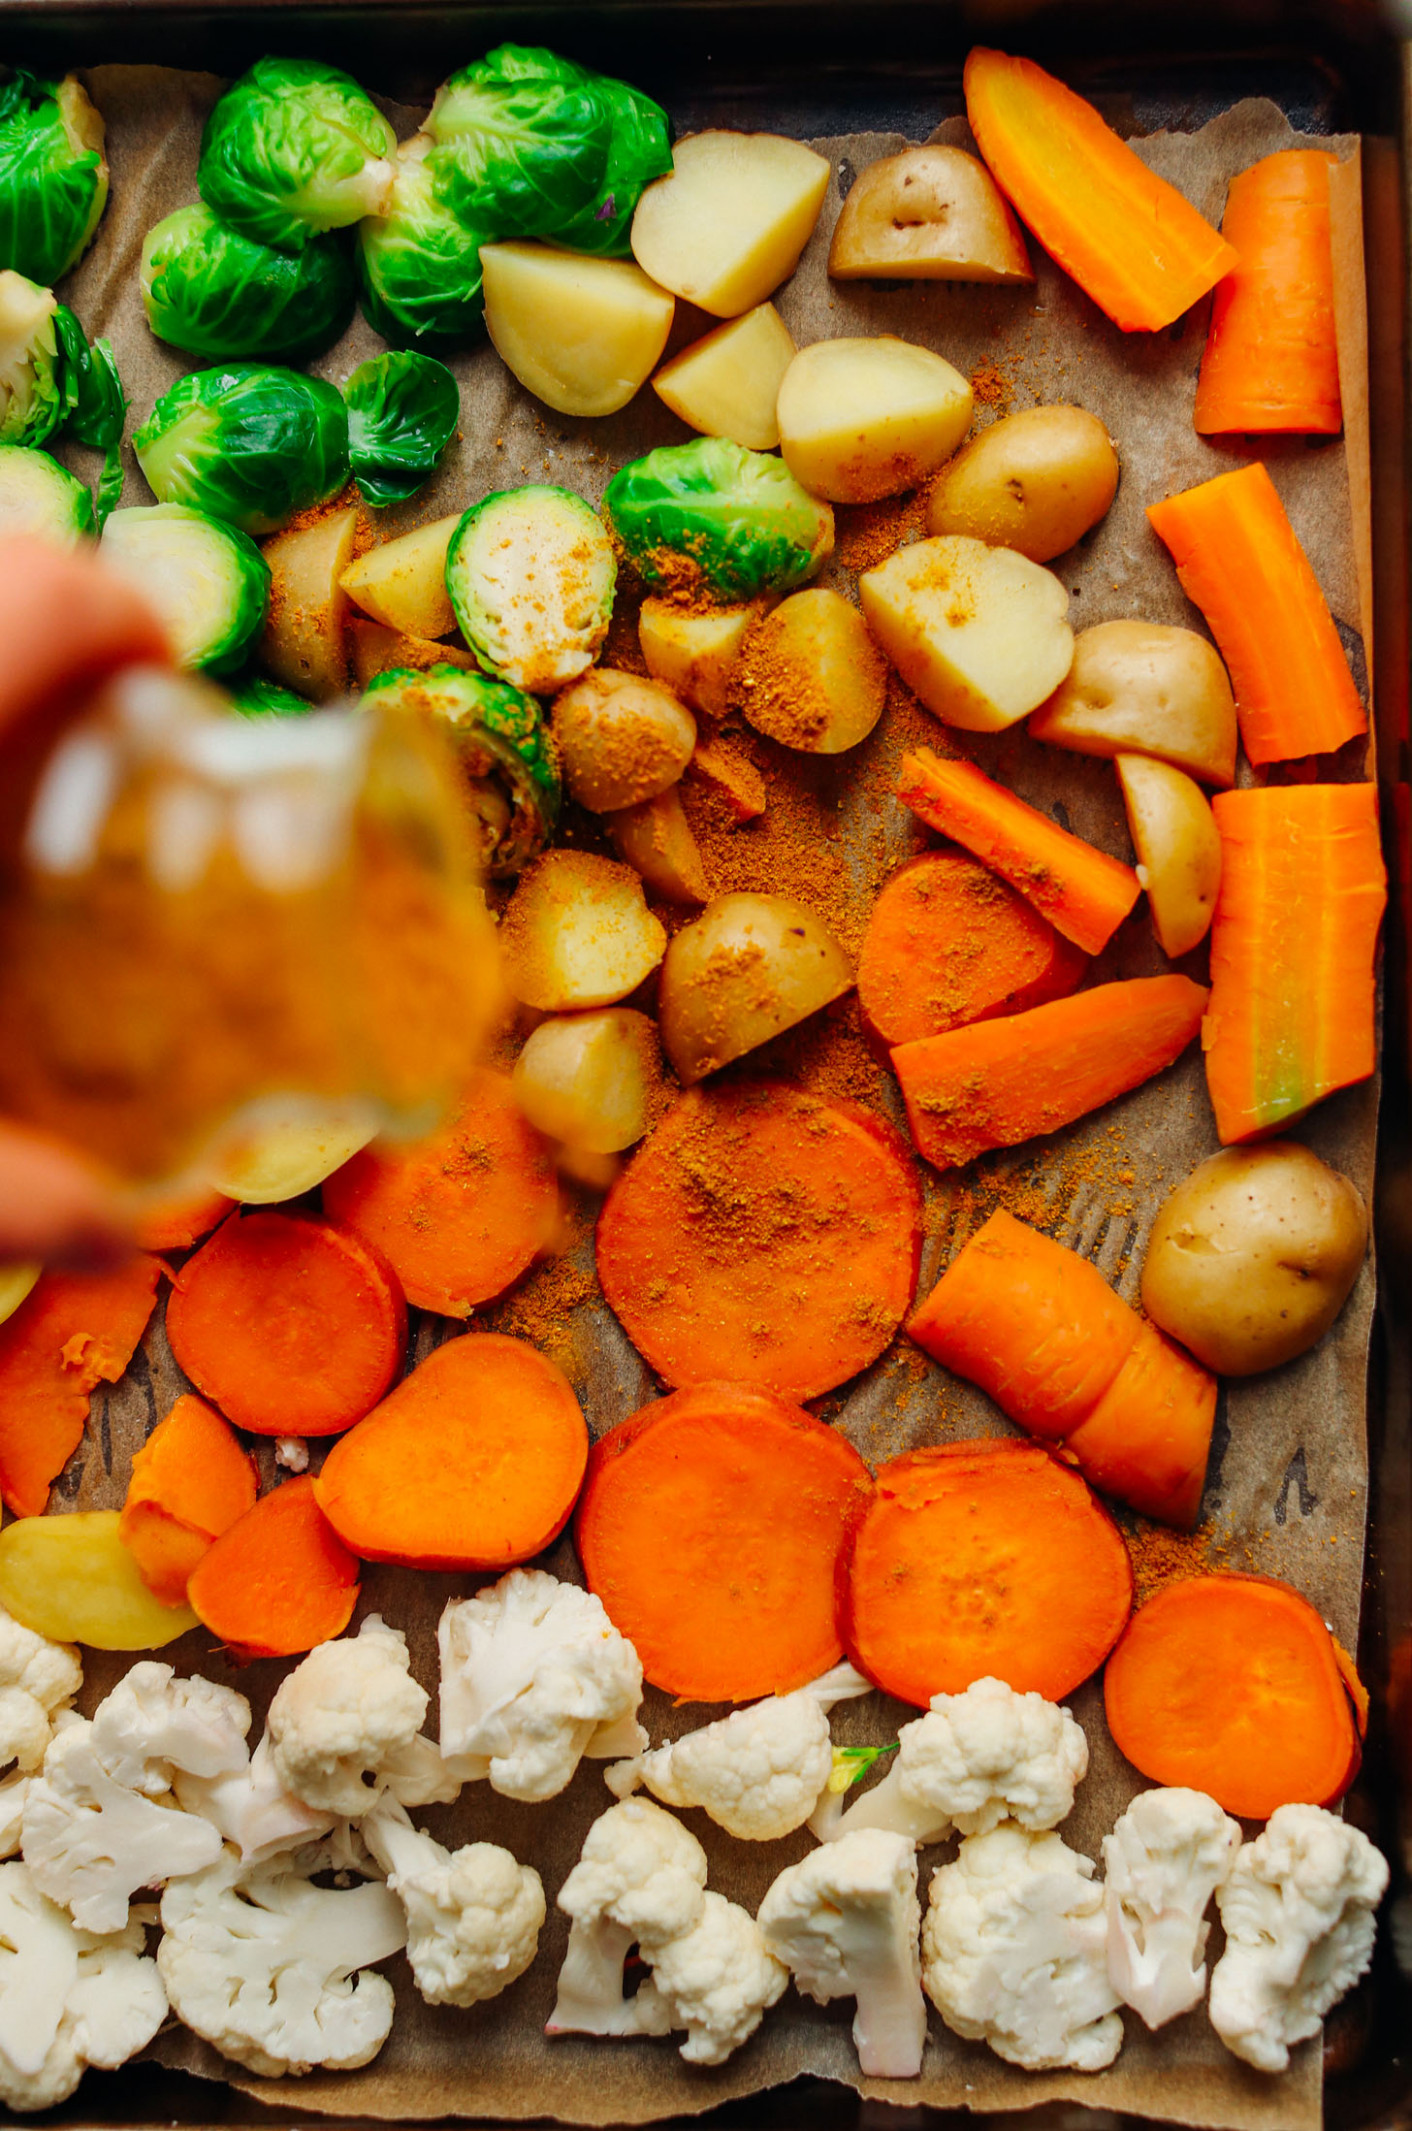 Oil Free Roasted Vegetables - Healthy Recipes Roasted Vegetables